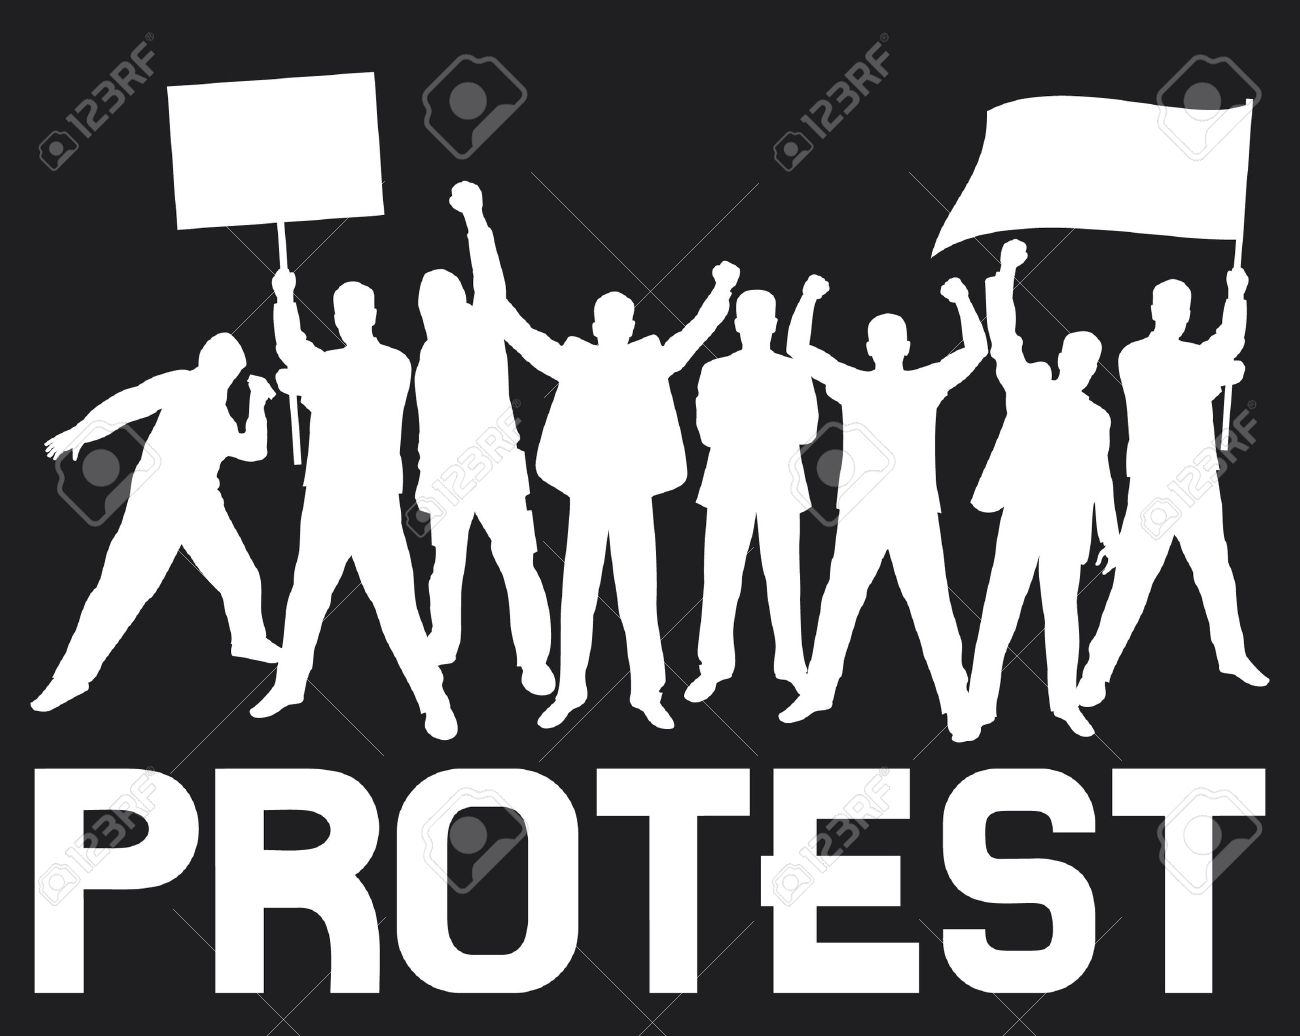 lots of furious people protesting (a group of people protesting, protest, demonstrator, protest man, demonstrations, protest, demonstrator, hooligan, fan, protest design, protest poster) Stock Vector - 15575593